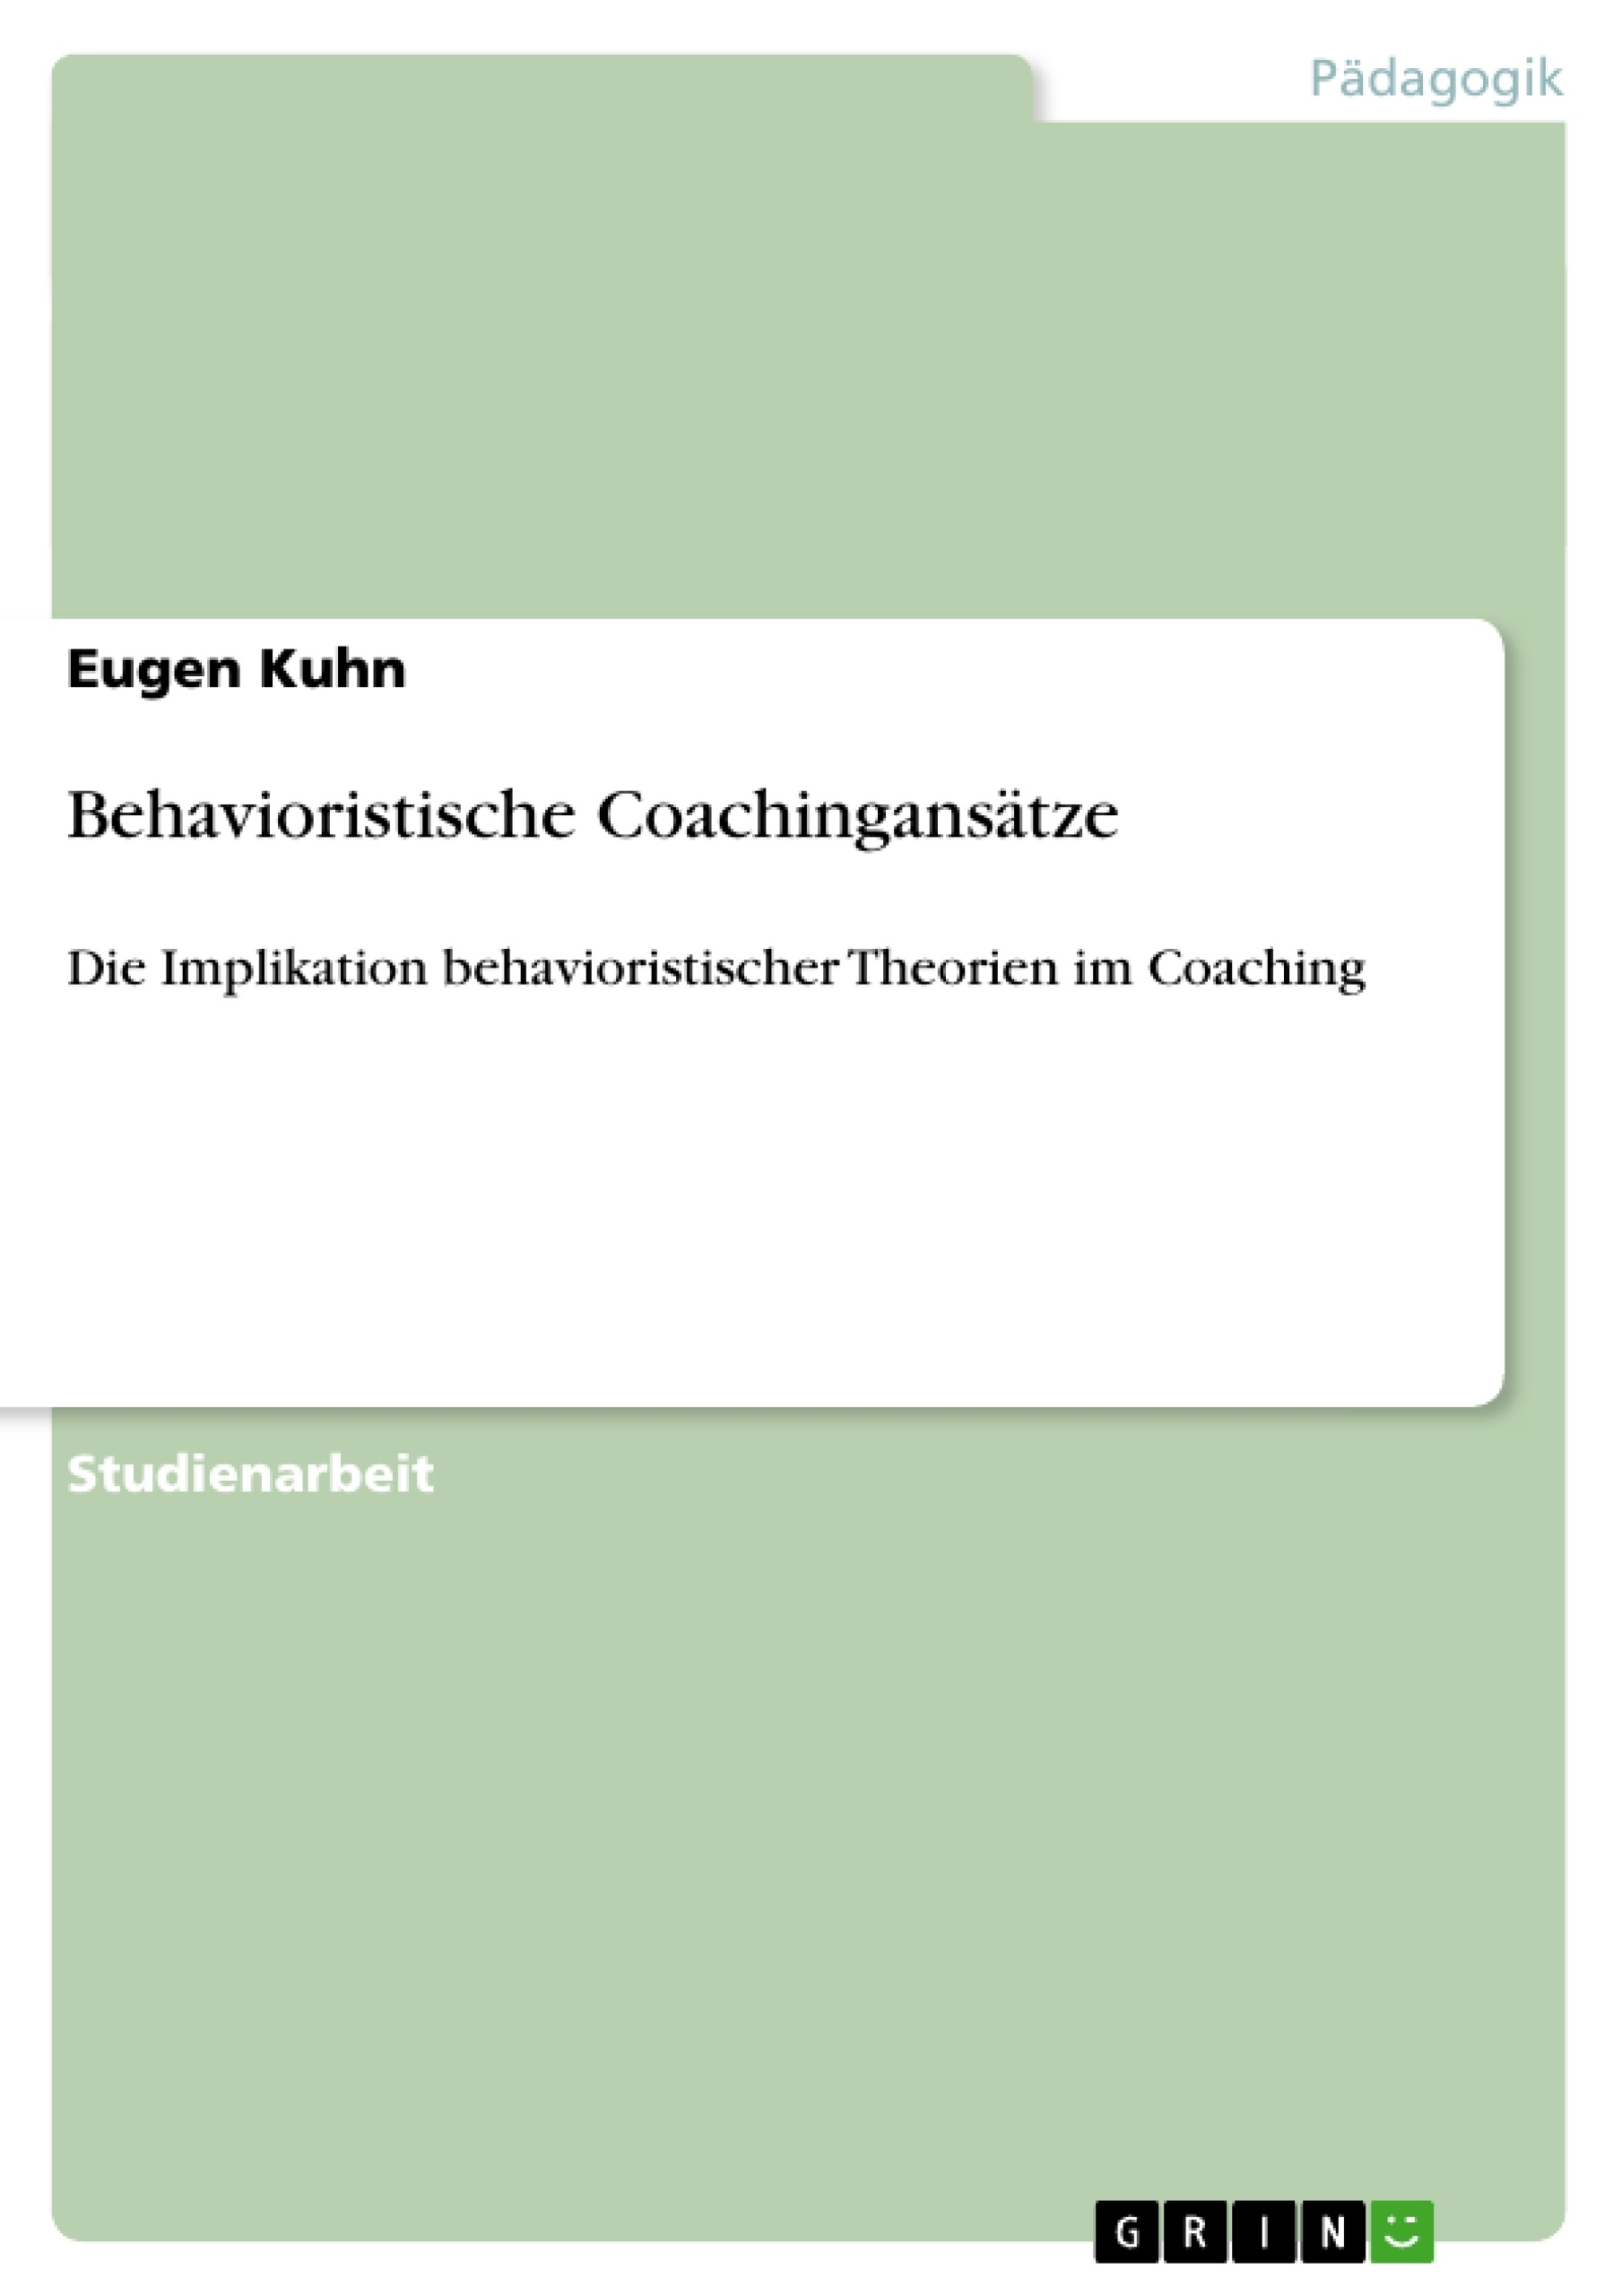 Titel: Behavioristische Coachingansätze